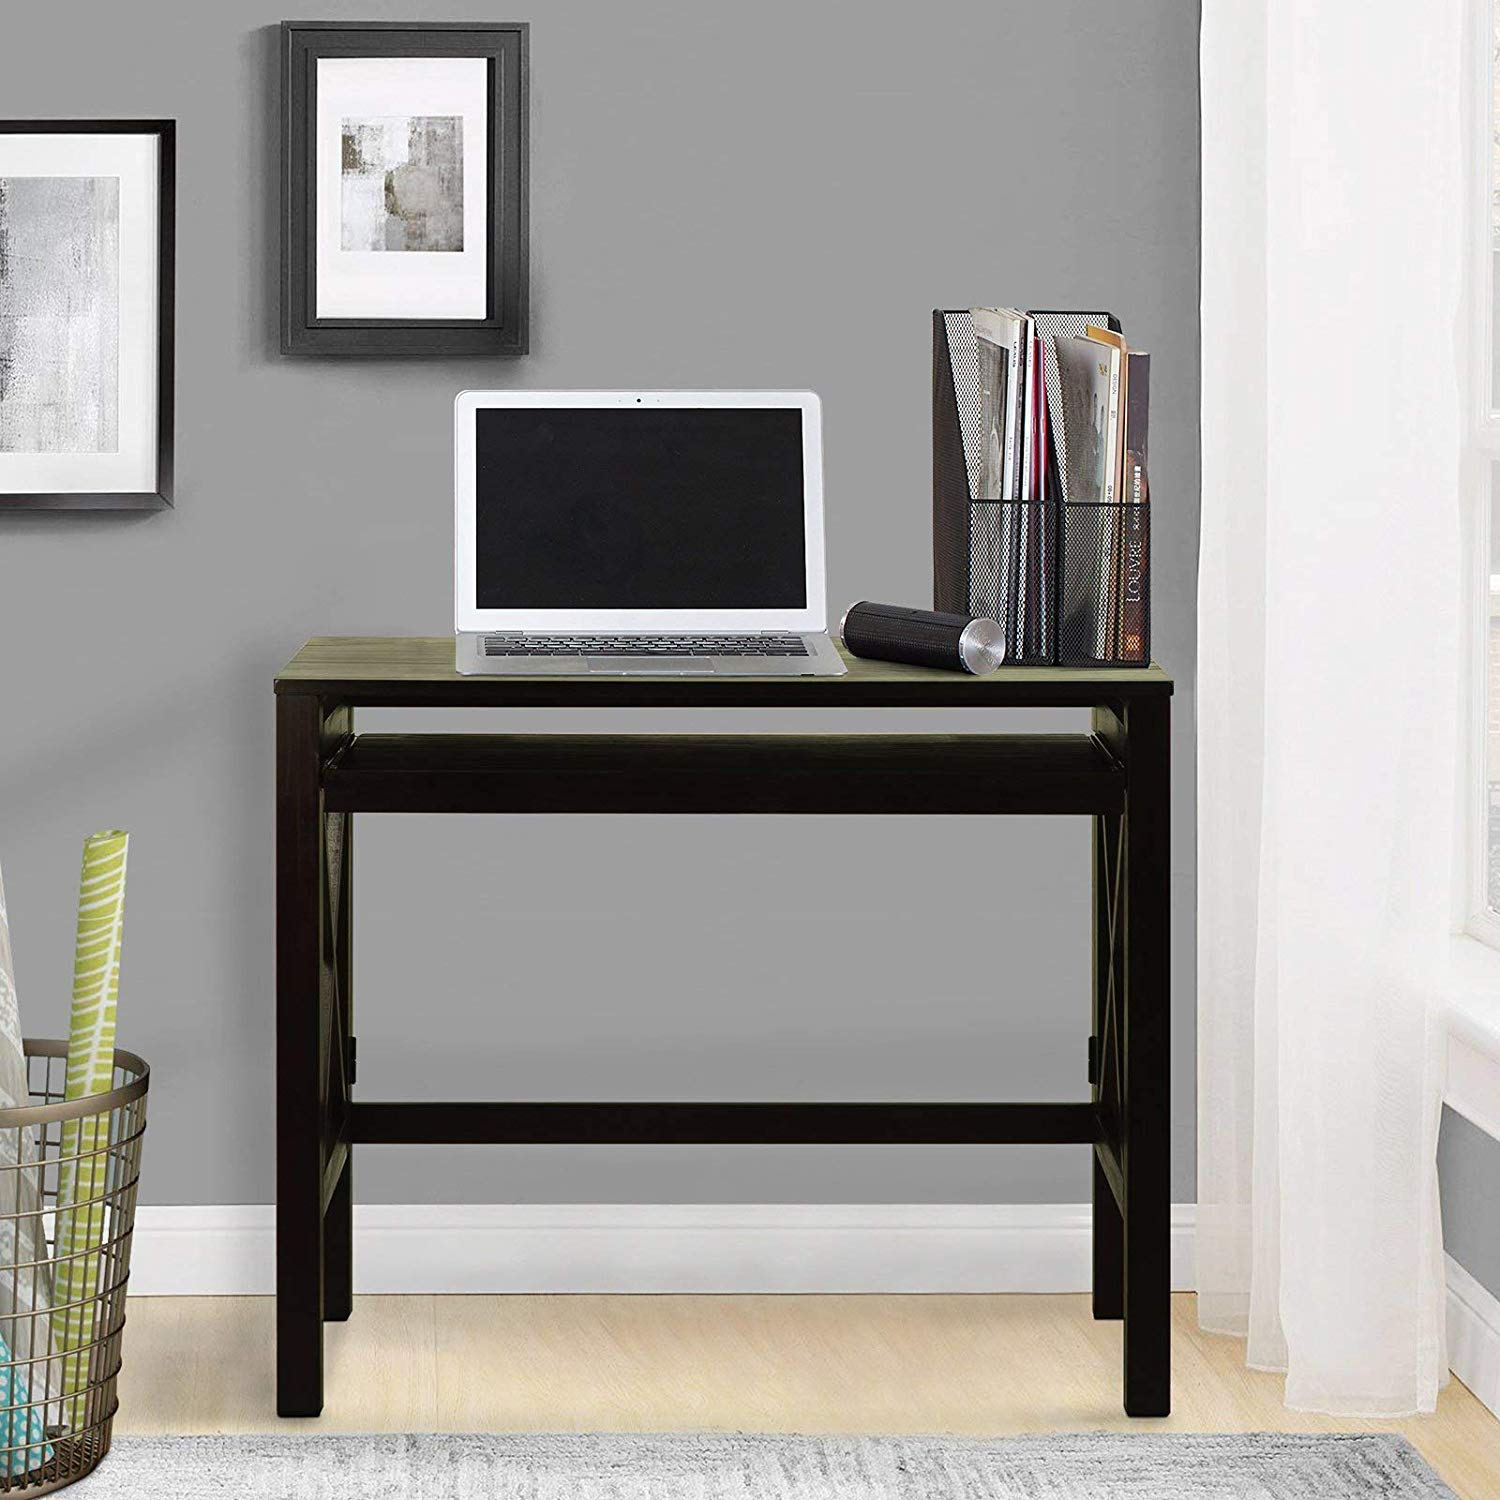 Folding Desk Pull-Out-Espresso Finish, Made from Wood, X-Design, Workspace, Solid Wood Construction, Home, Office Furniture, Bundle Our Expert Guide Tips Home Arrangement